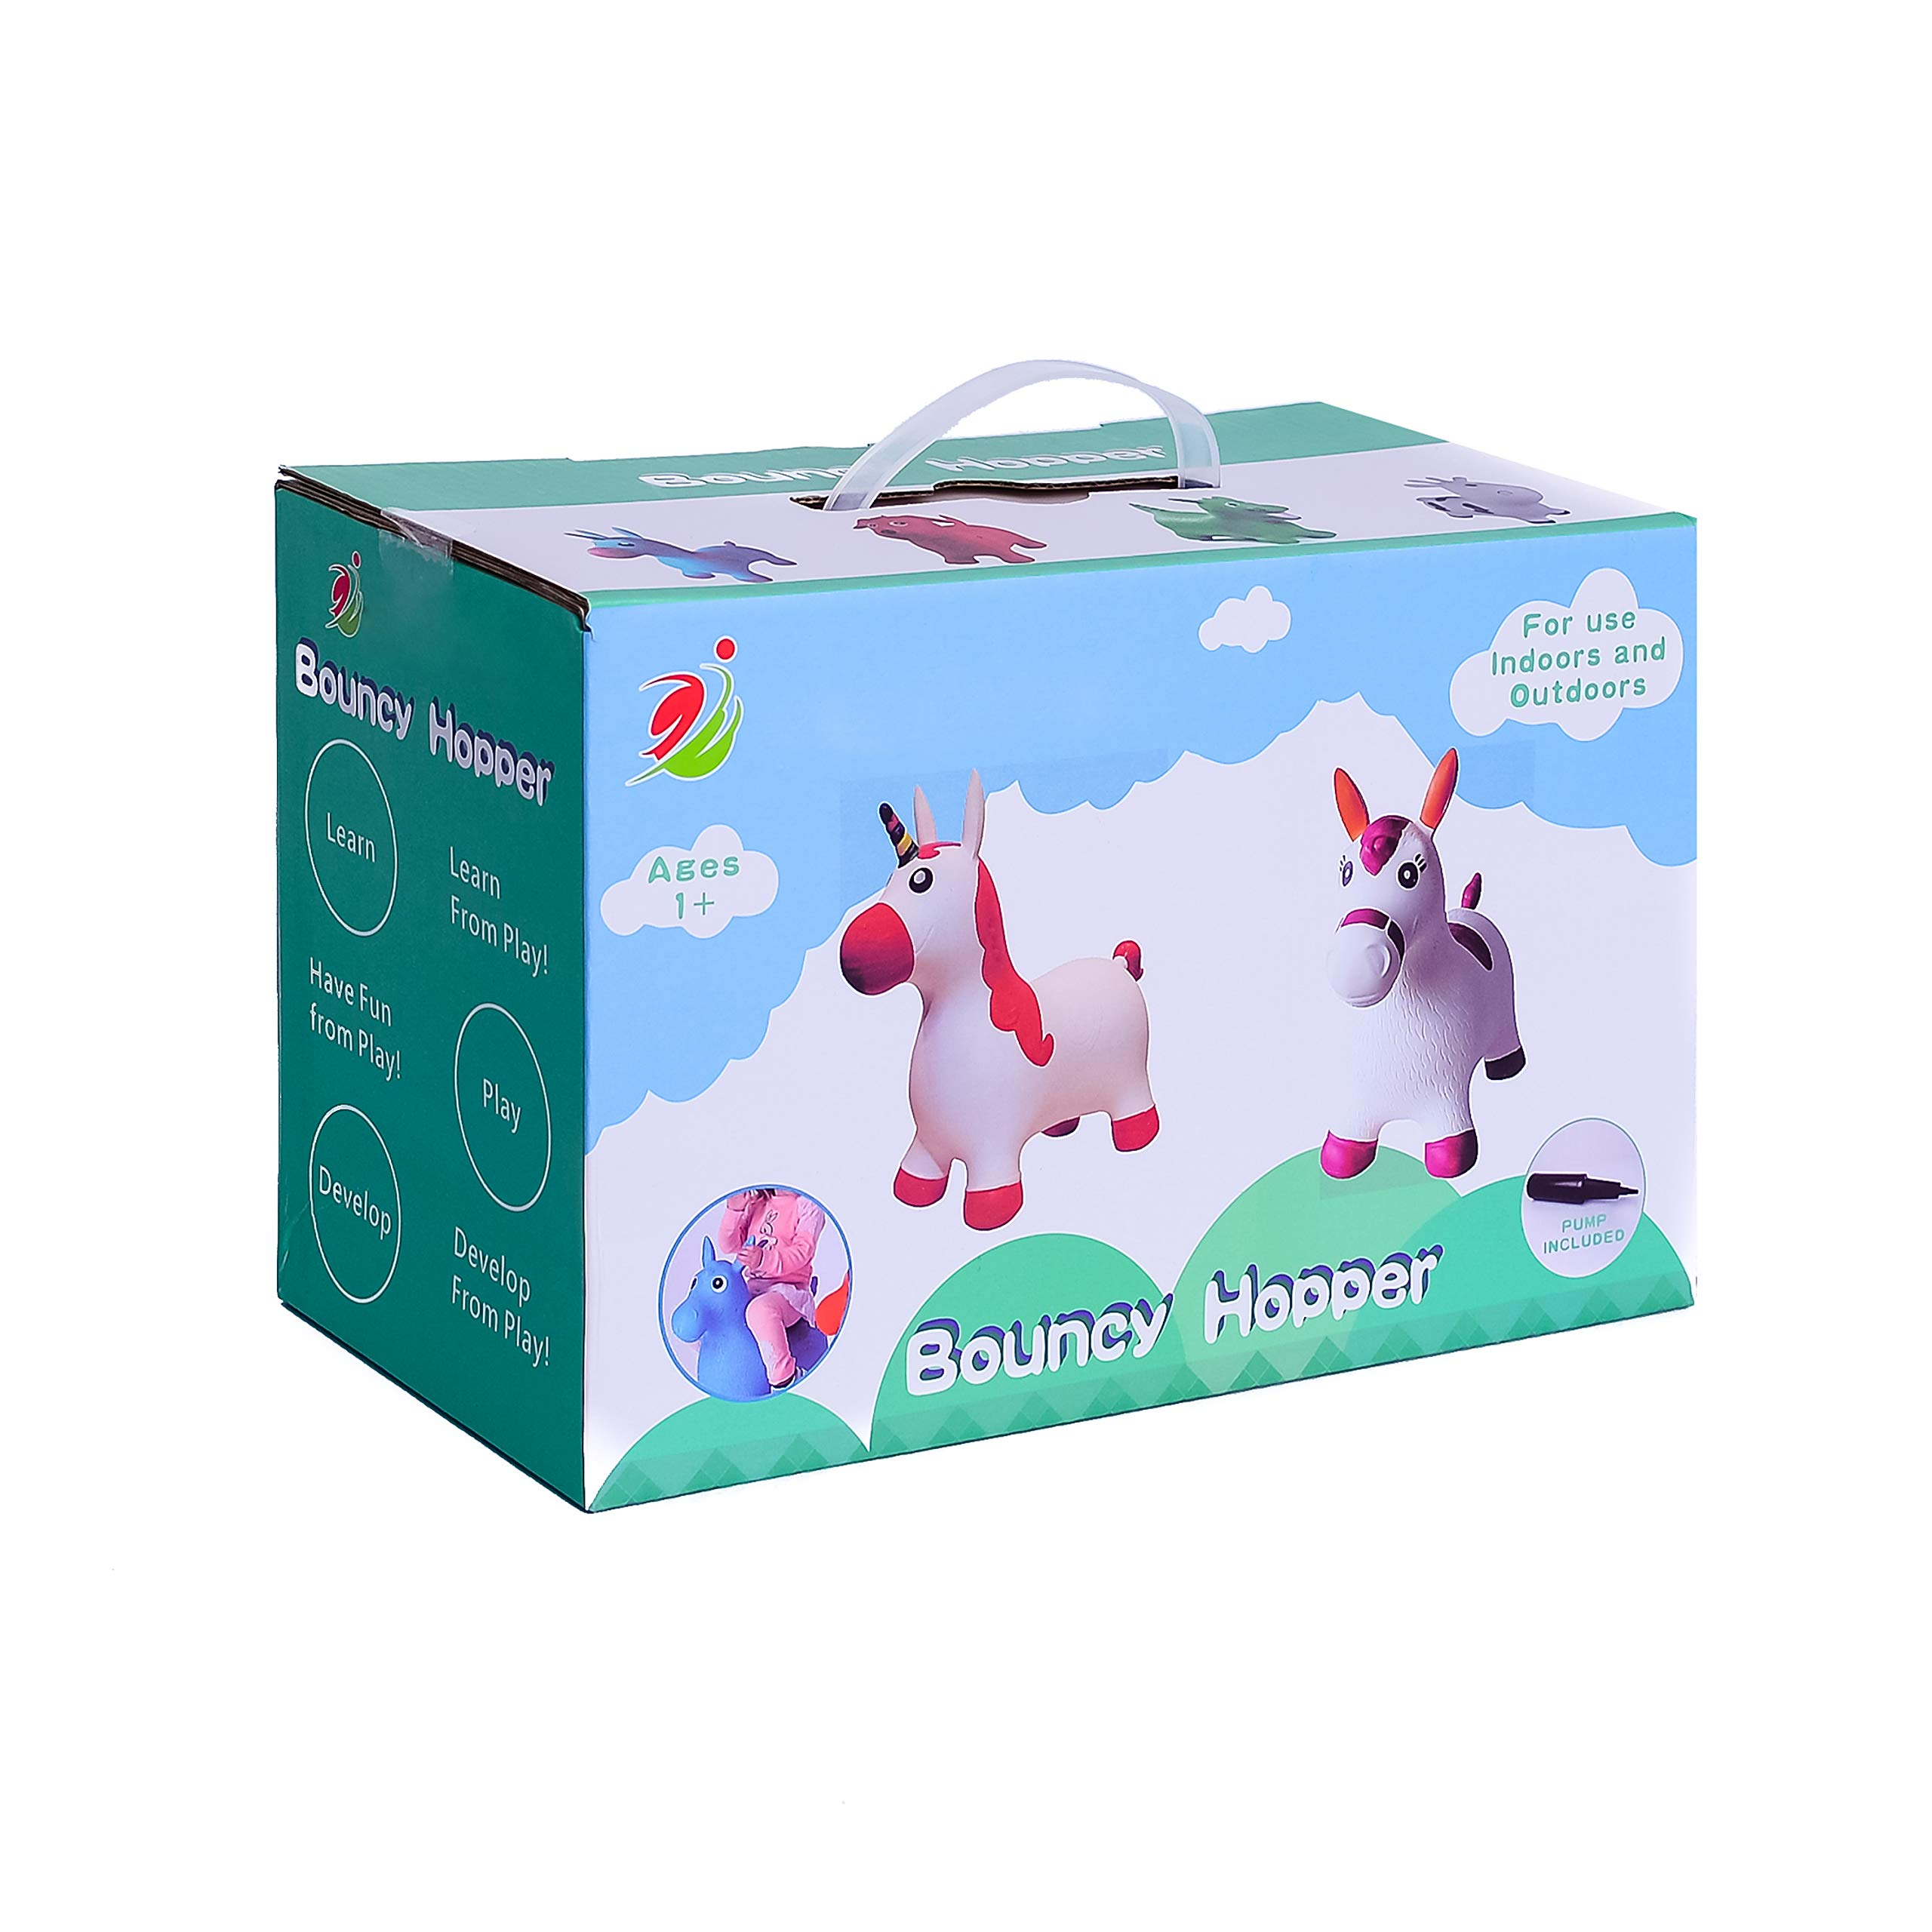 Kiddie Play Hopper Ball Unicorn Inflatable Hoppity Hop Bouncy Horse Toy (Pump Included) by Kiddie Play (Image #7)